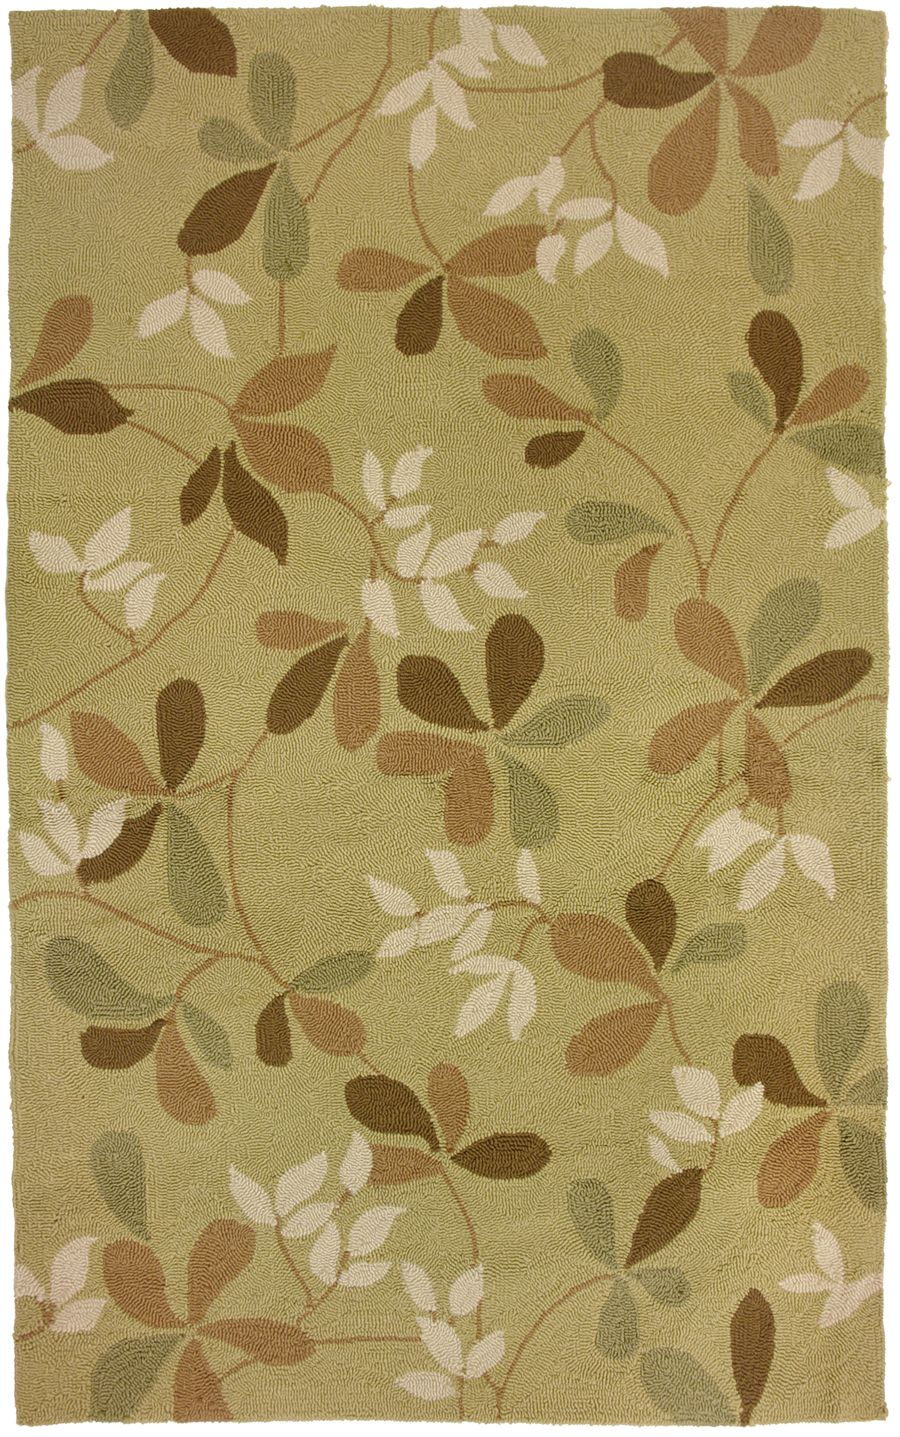 homefires asbury park contemporary area rug collection